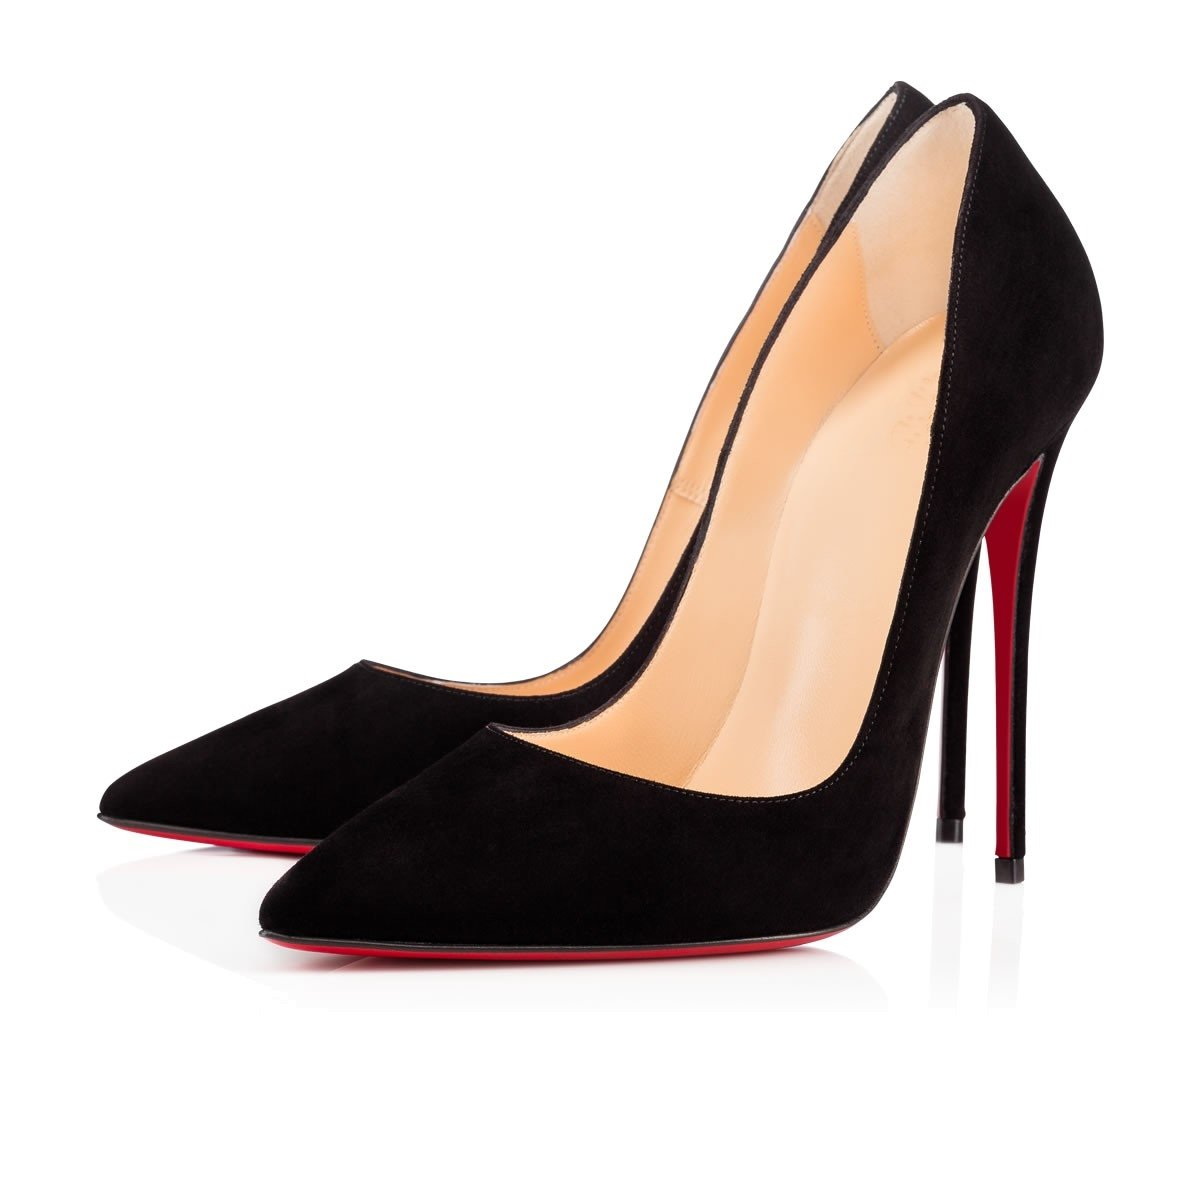 Chris-T Womens Formal Pointed Toe Heel Pumps Basic Shoes High Heel Toe Stilettos Sexy Slip On Dress Shoes Size 4-15 US B07F37L39Z 13 B(M) US|Black Suede/Red S0le(bottom) 20b65b